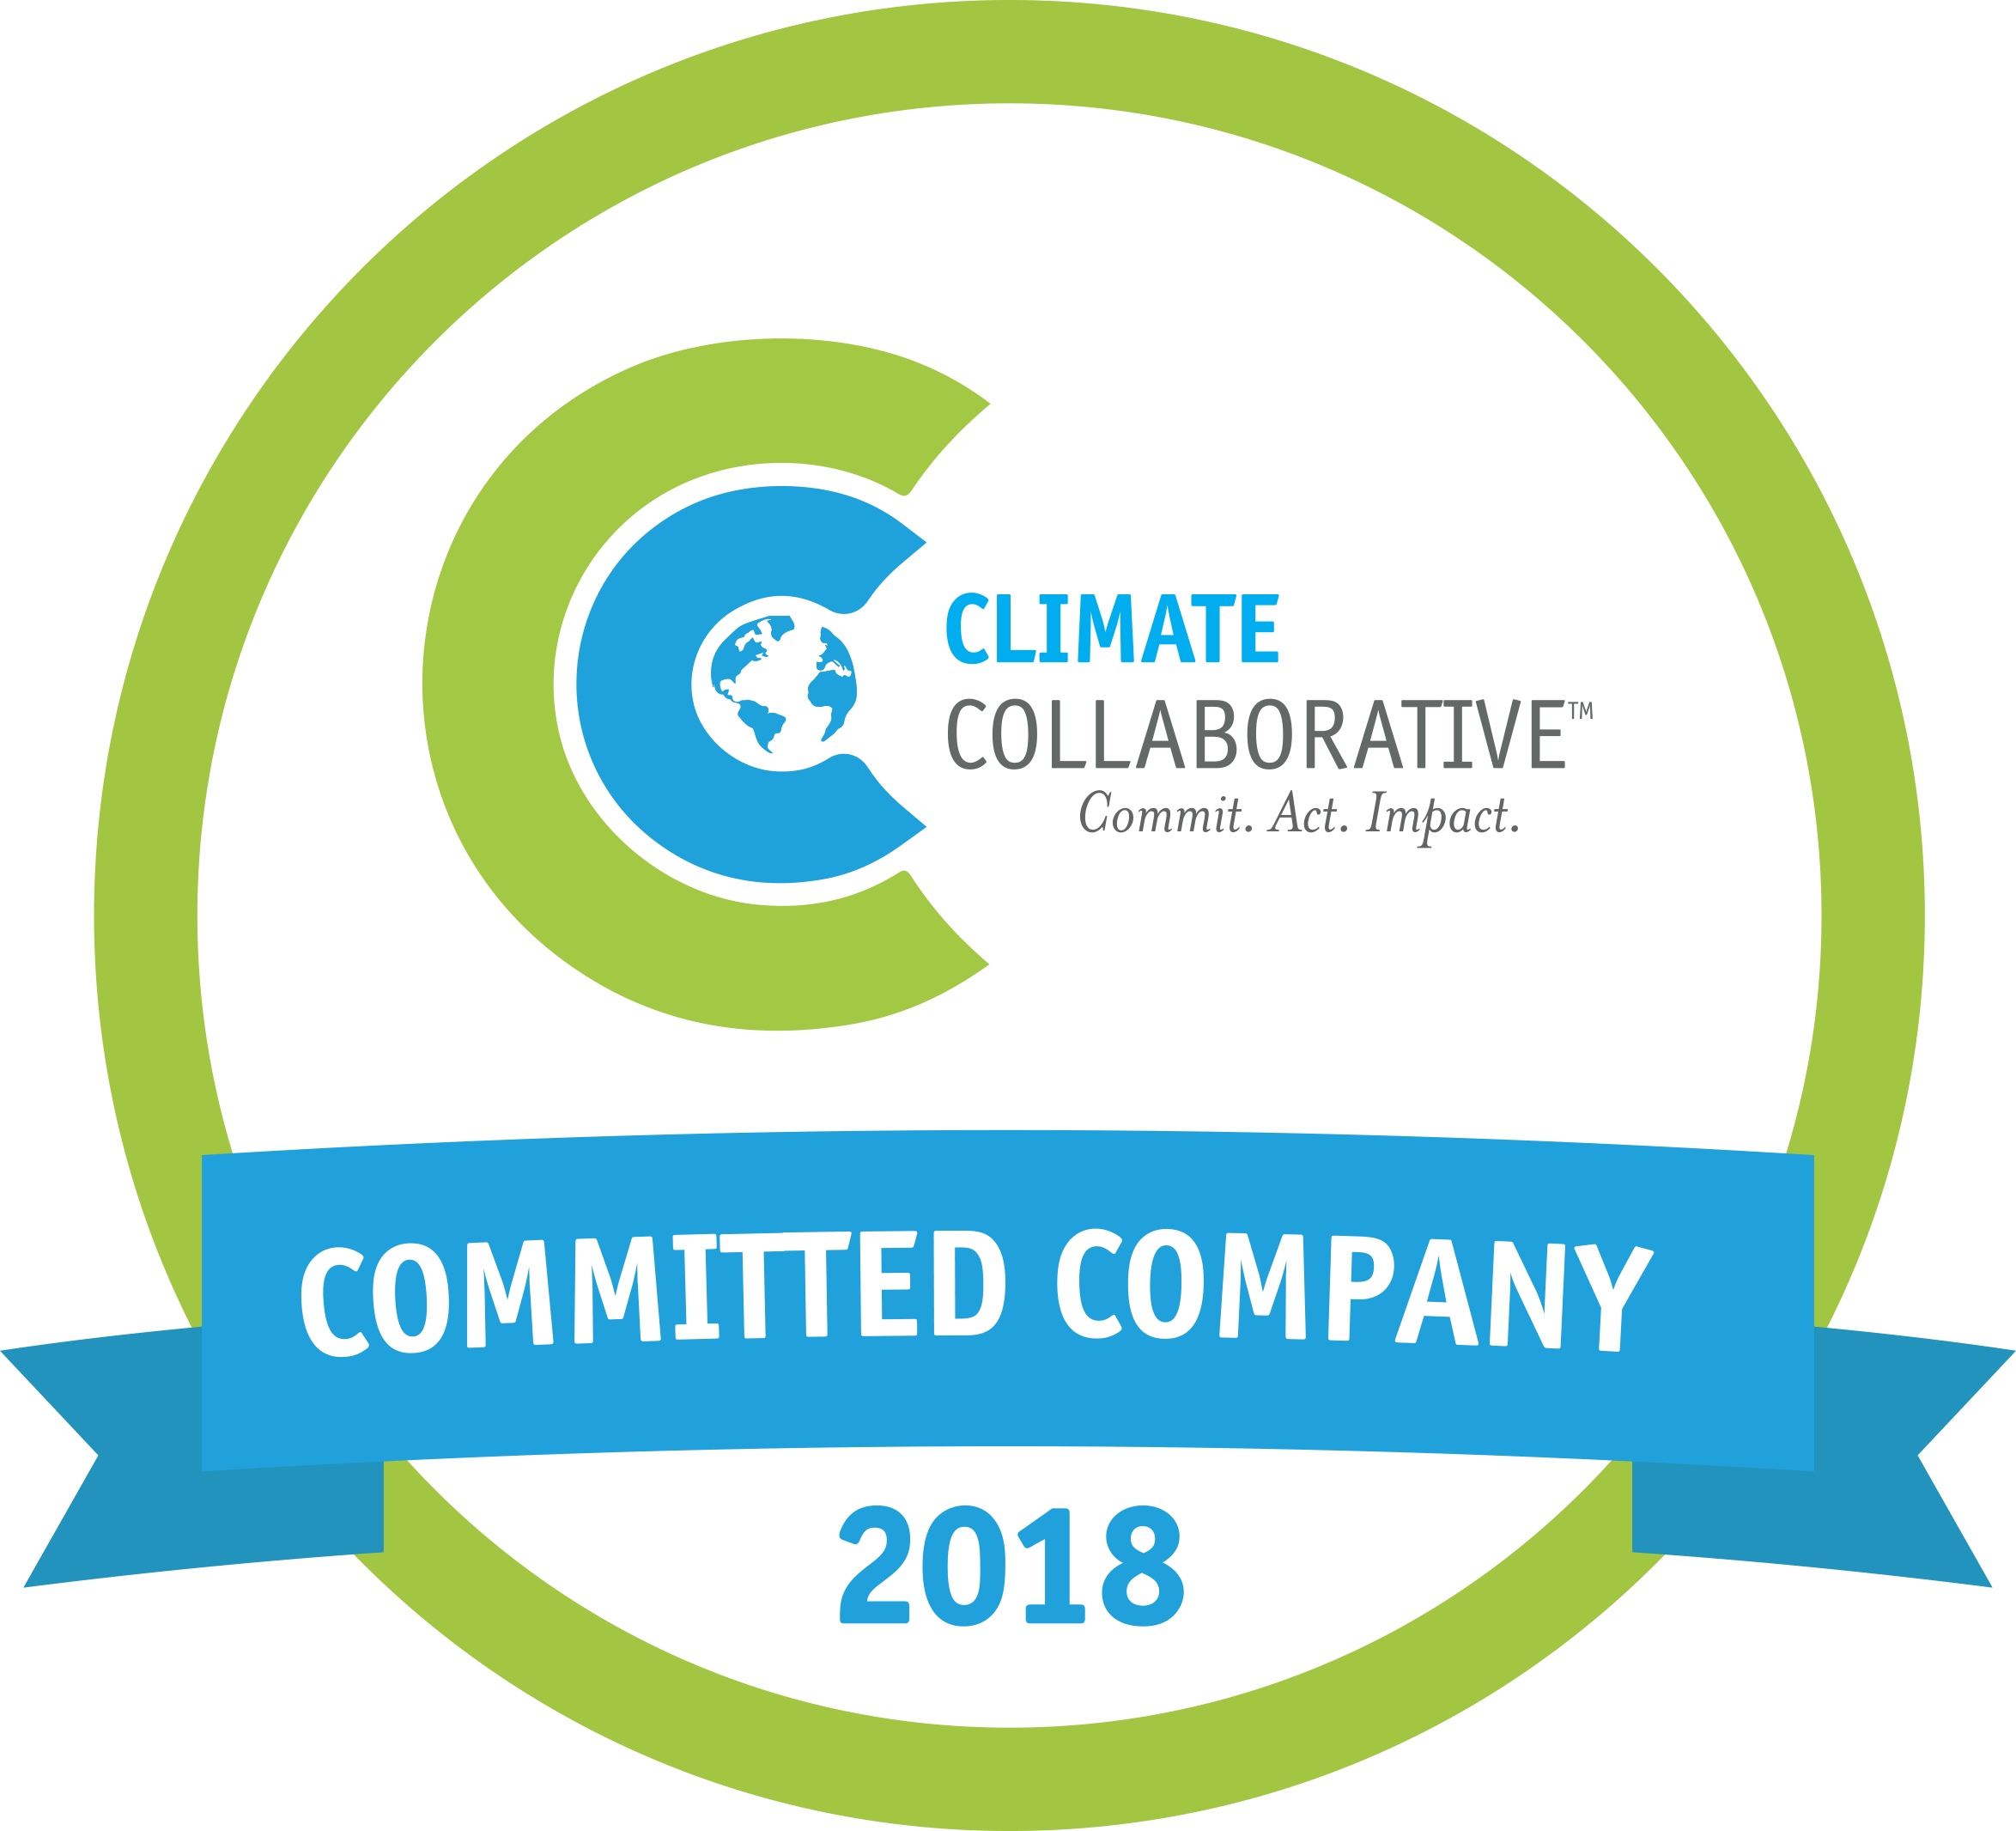 ClimateCollaborativeBadges_2018.png